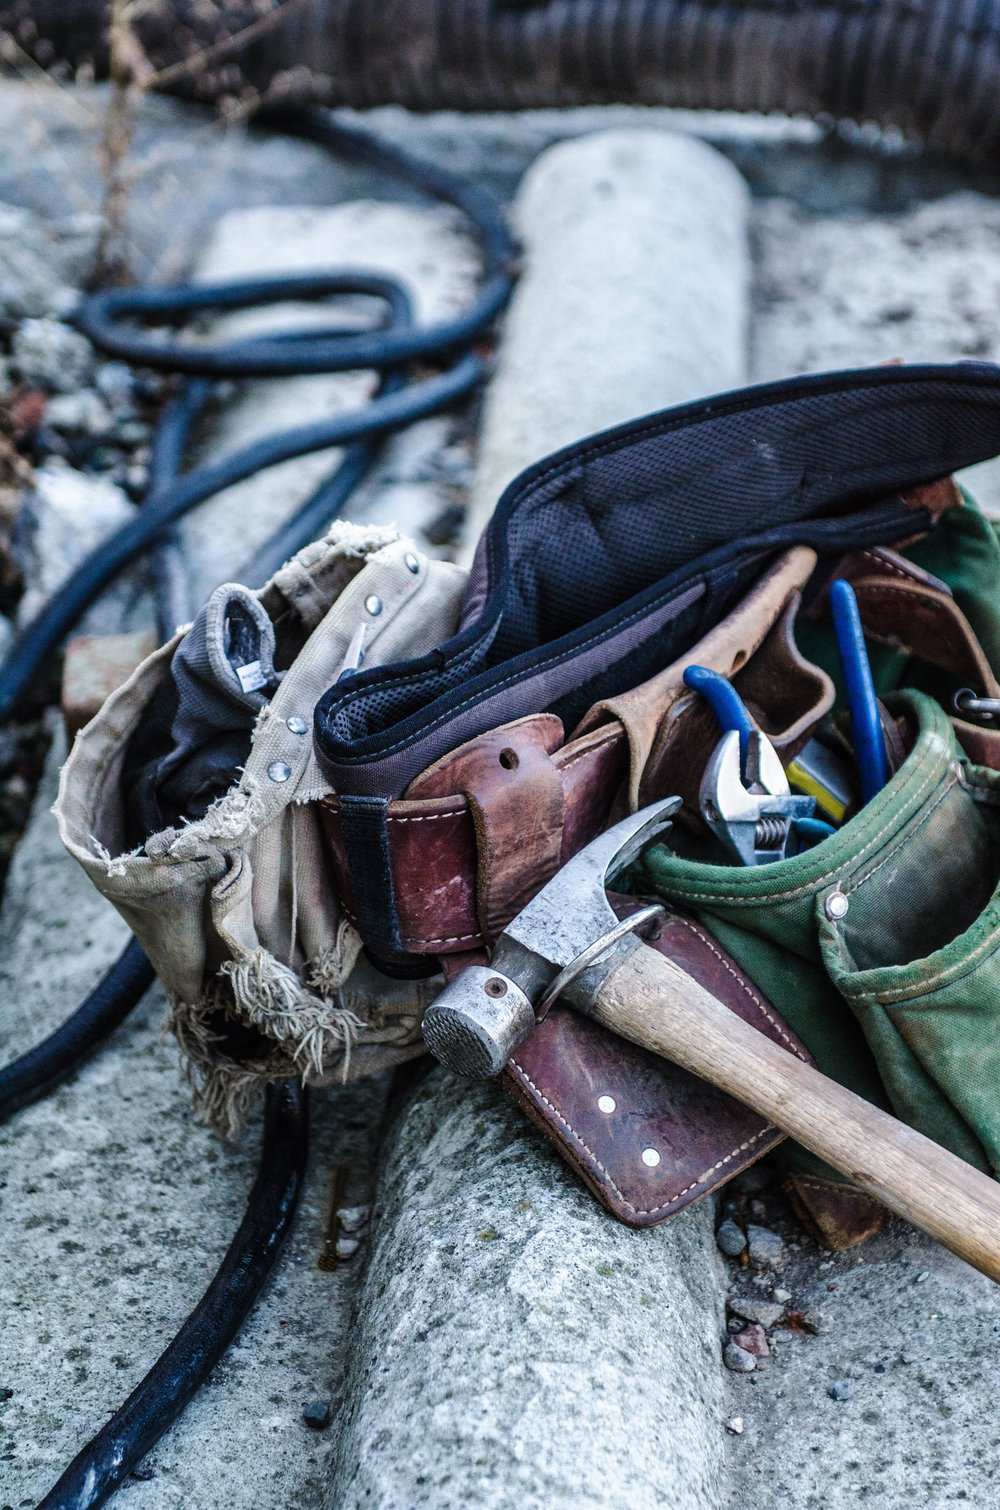 News Michelle Perez Realtor How To Build A Horse Barn Hometips The 7 Most Needed Repair Tips Every Homeowner Should Know